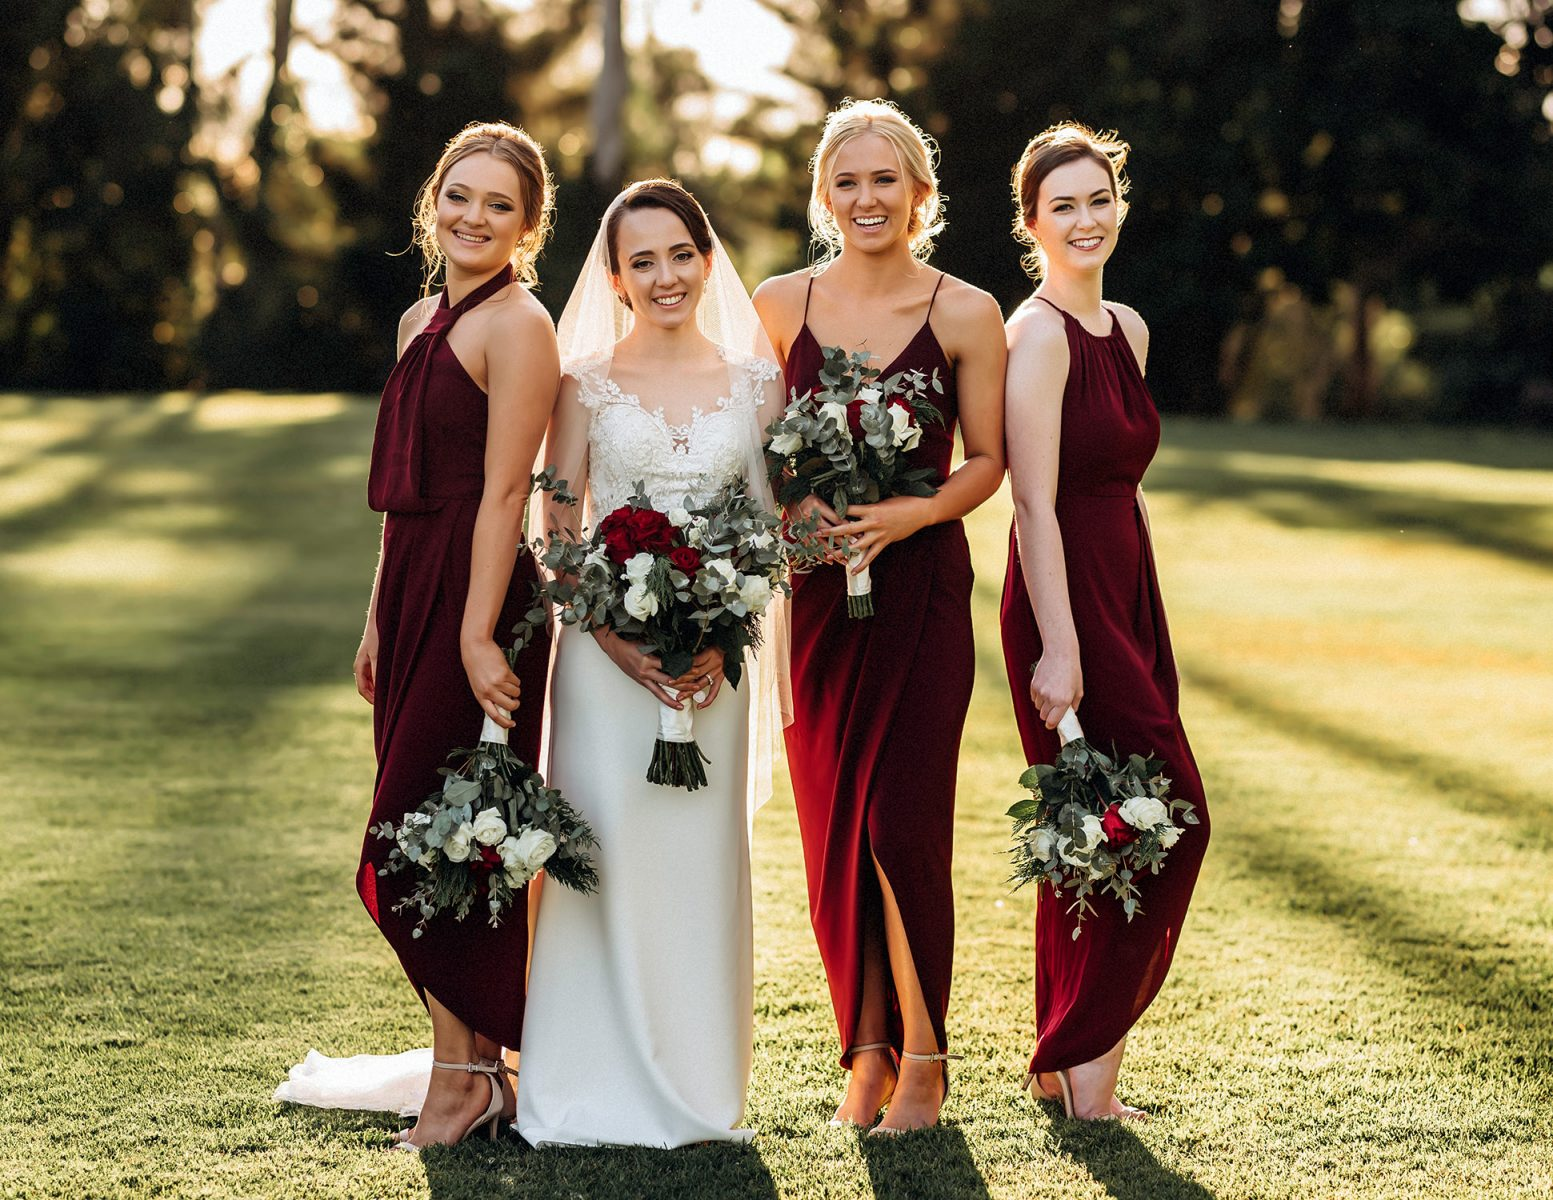 Bride with Bridesmaids holding bouquets.